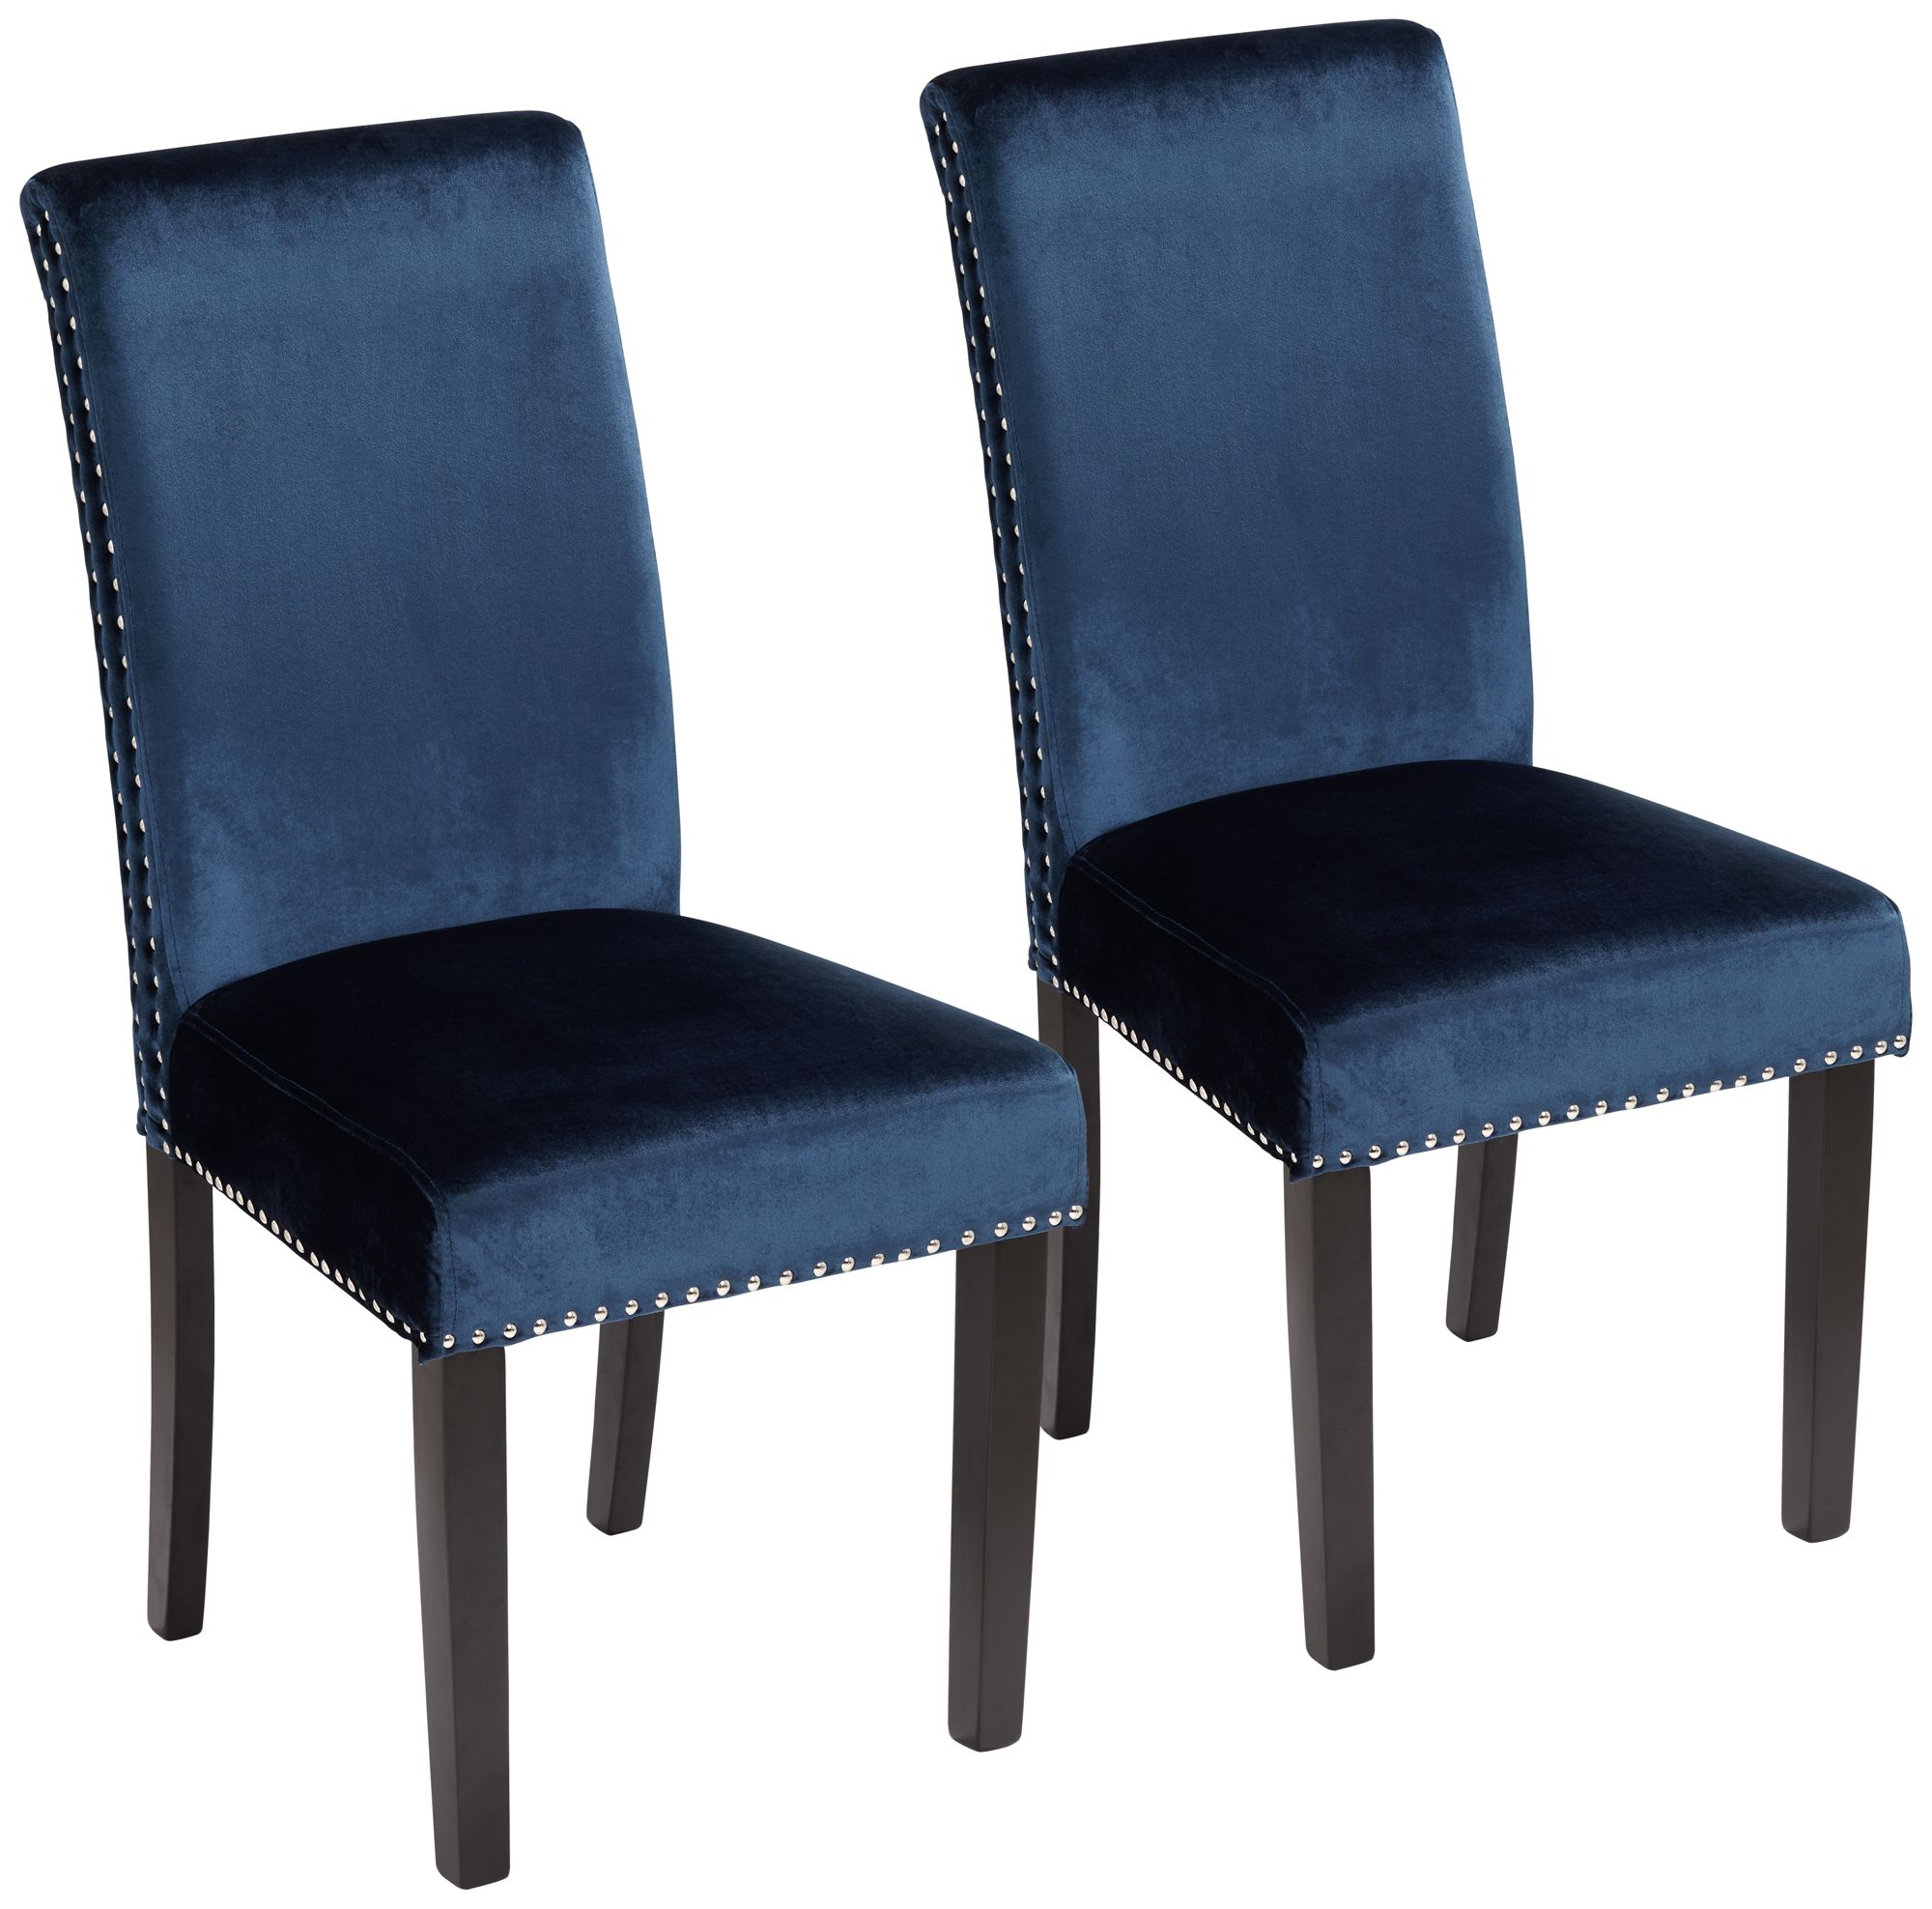 Merveilleux Scarpa Blue Armless Dining Chairs Set Of 2